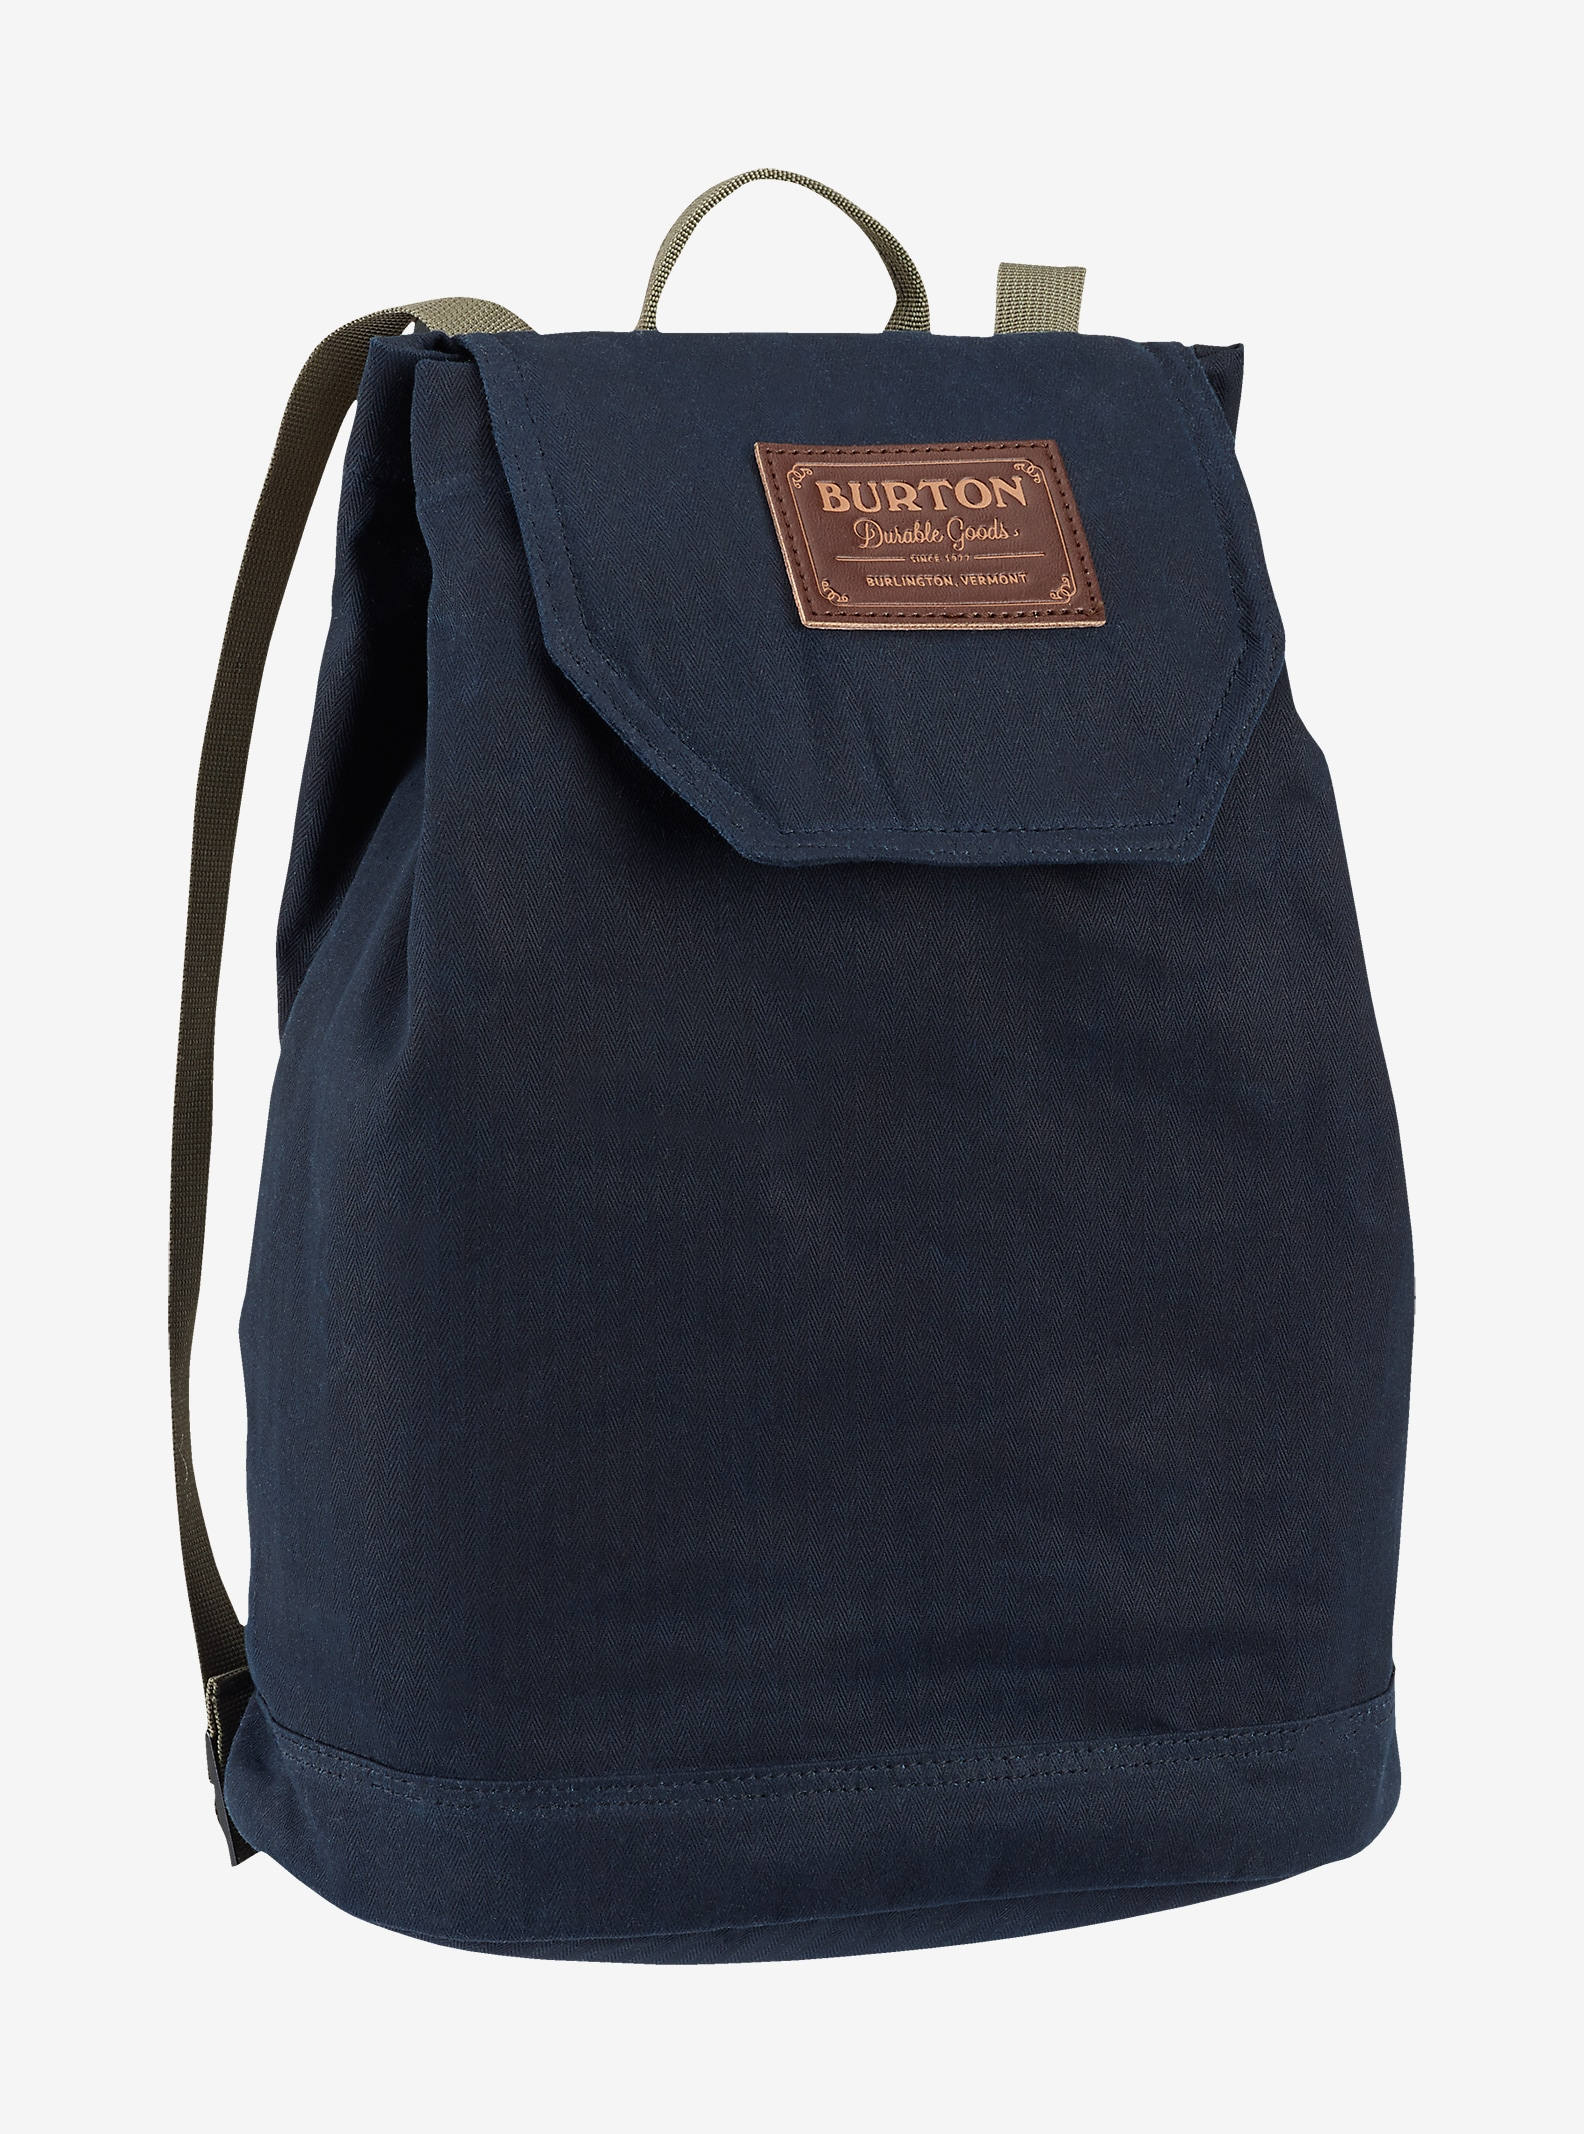 Burton Parcel Pack shown in Midnight Eclipse [bluesign® Approved Fabric]